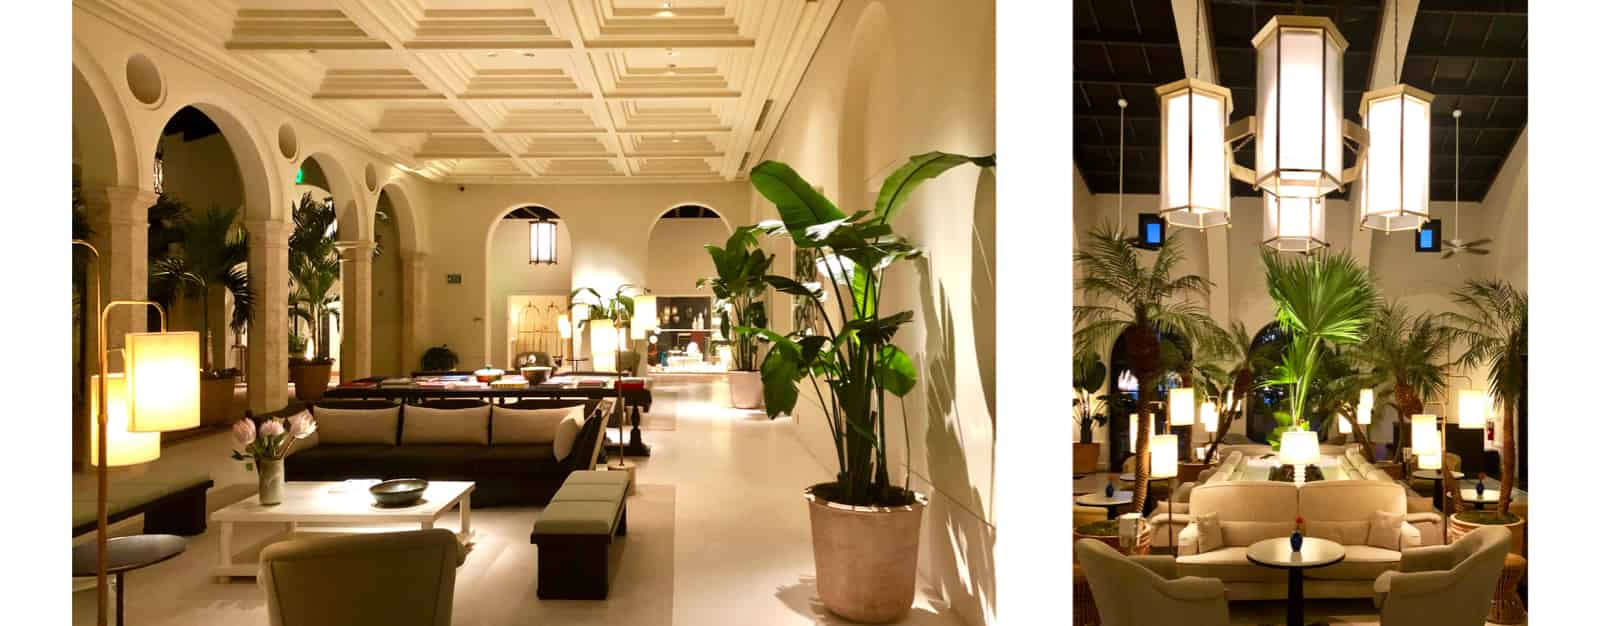 Two views of the Four Seasons Surf Club lobby ordered horizontally.